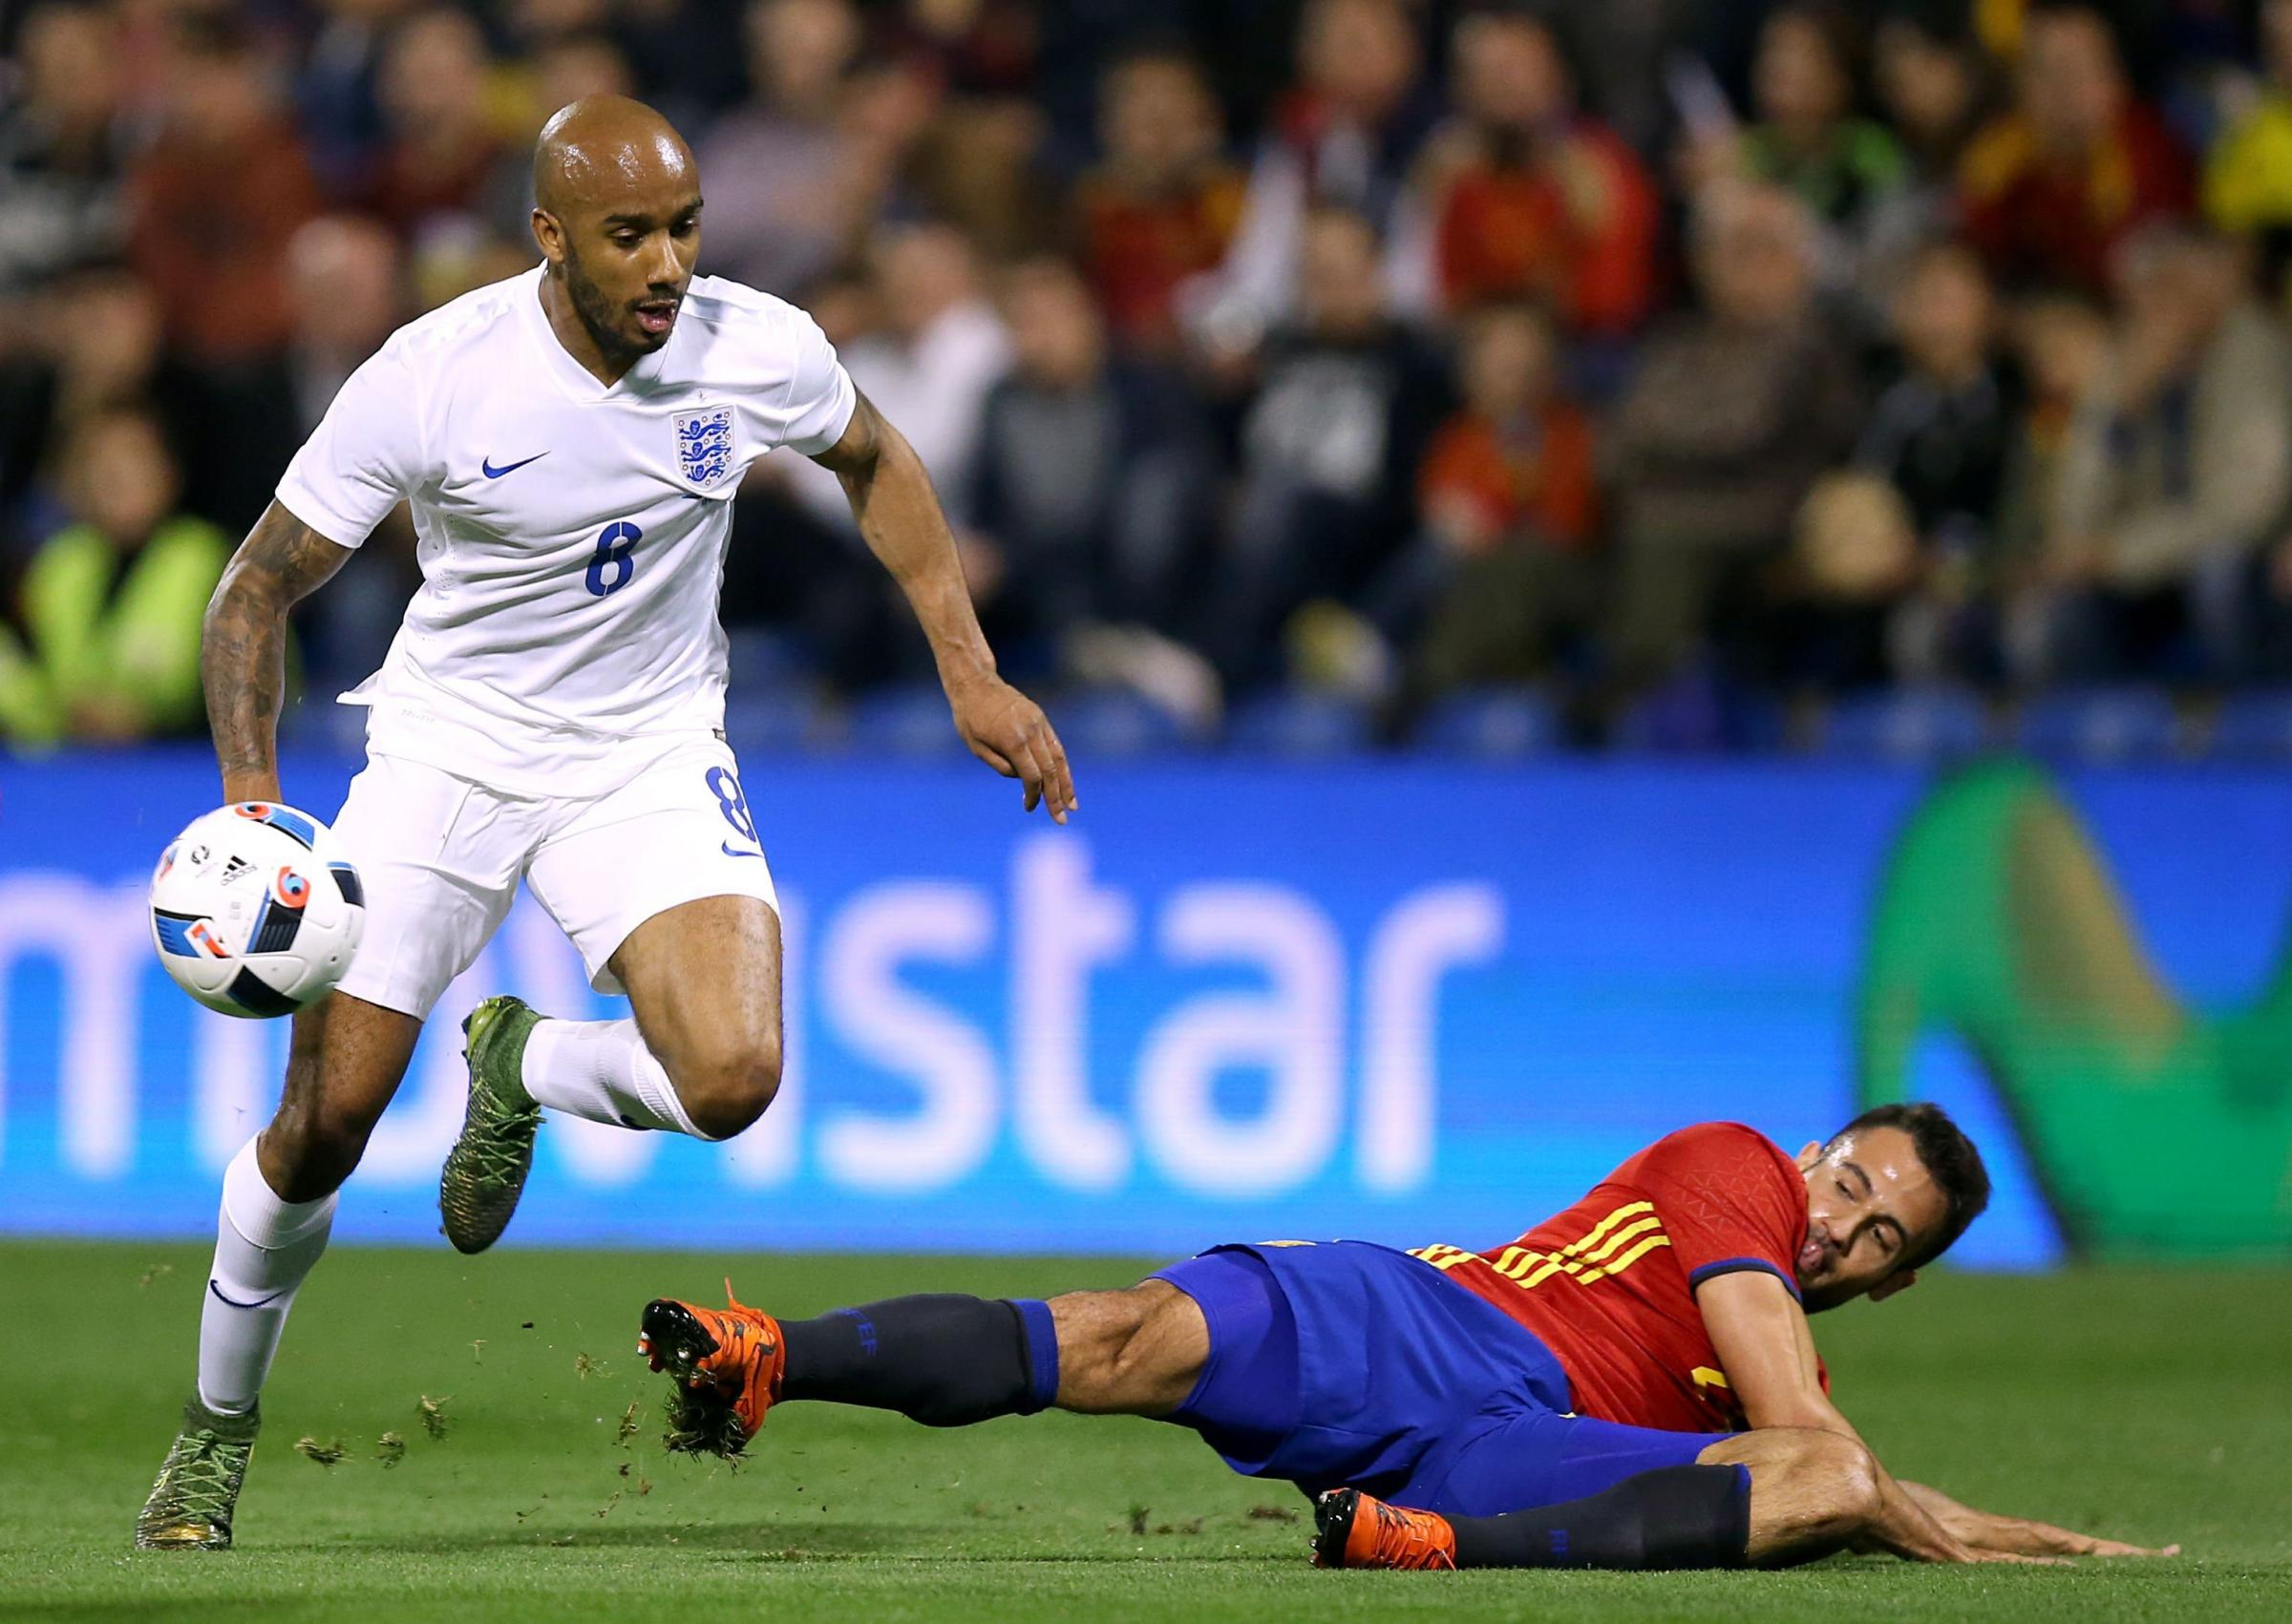 INTERNATIONAL: Fabian Delph in action for England against Spain